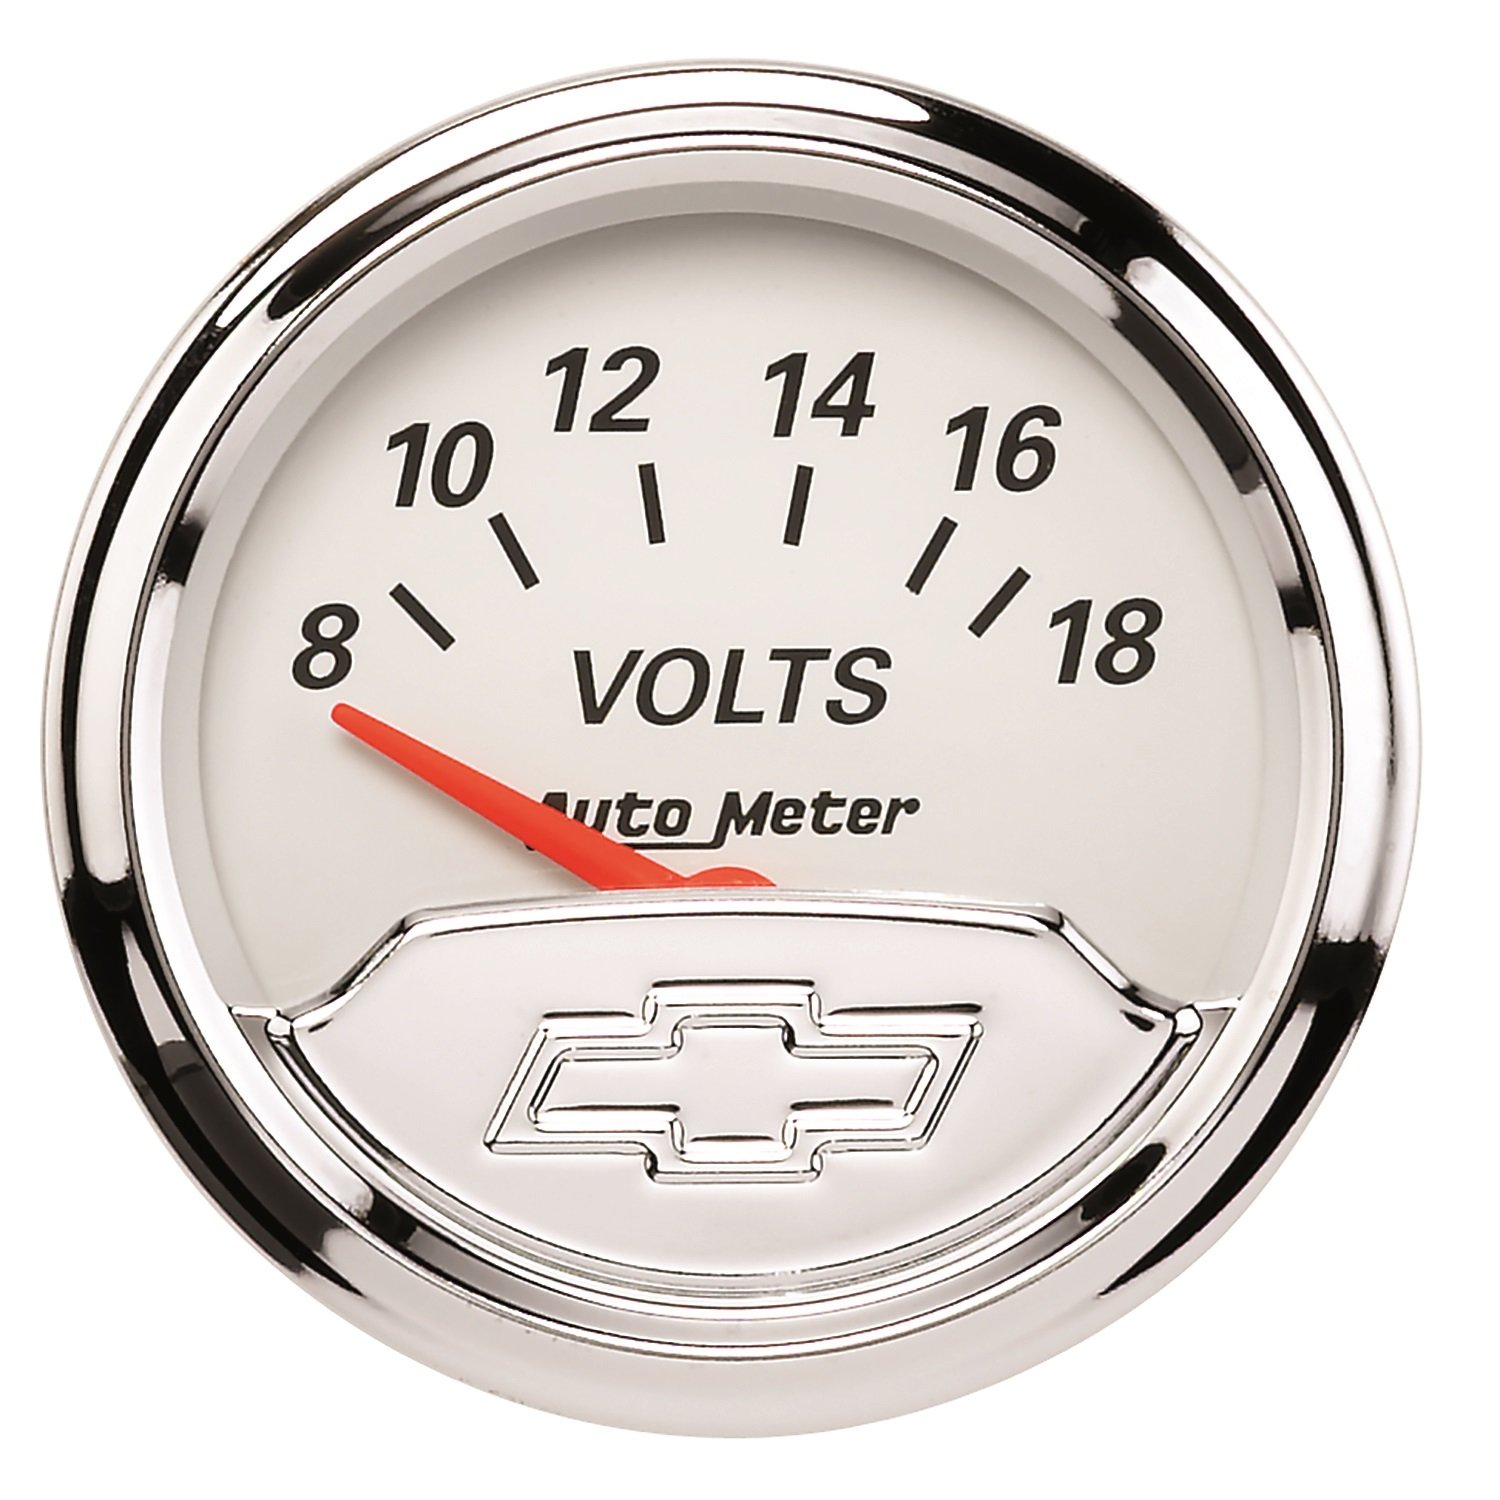 Auto Meter 1391-00408 Chevy Vintage 2-1/16' 8V - 18V Electric Voltmeter Gauge (52.4mm)